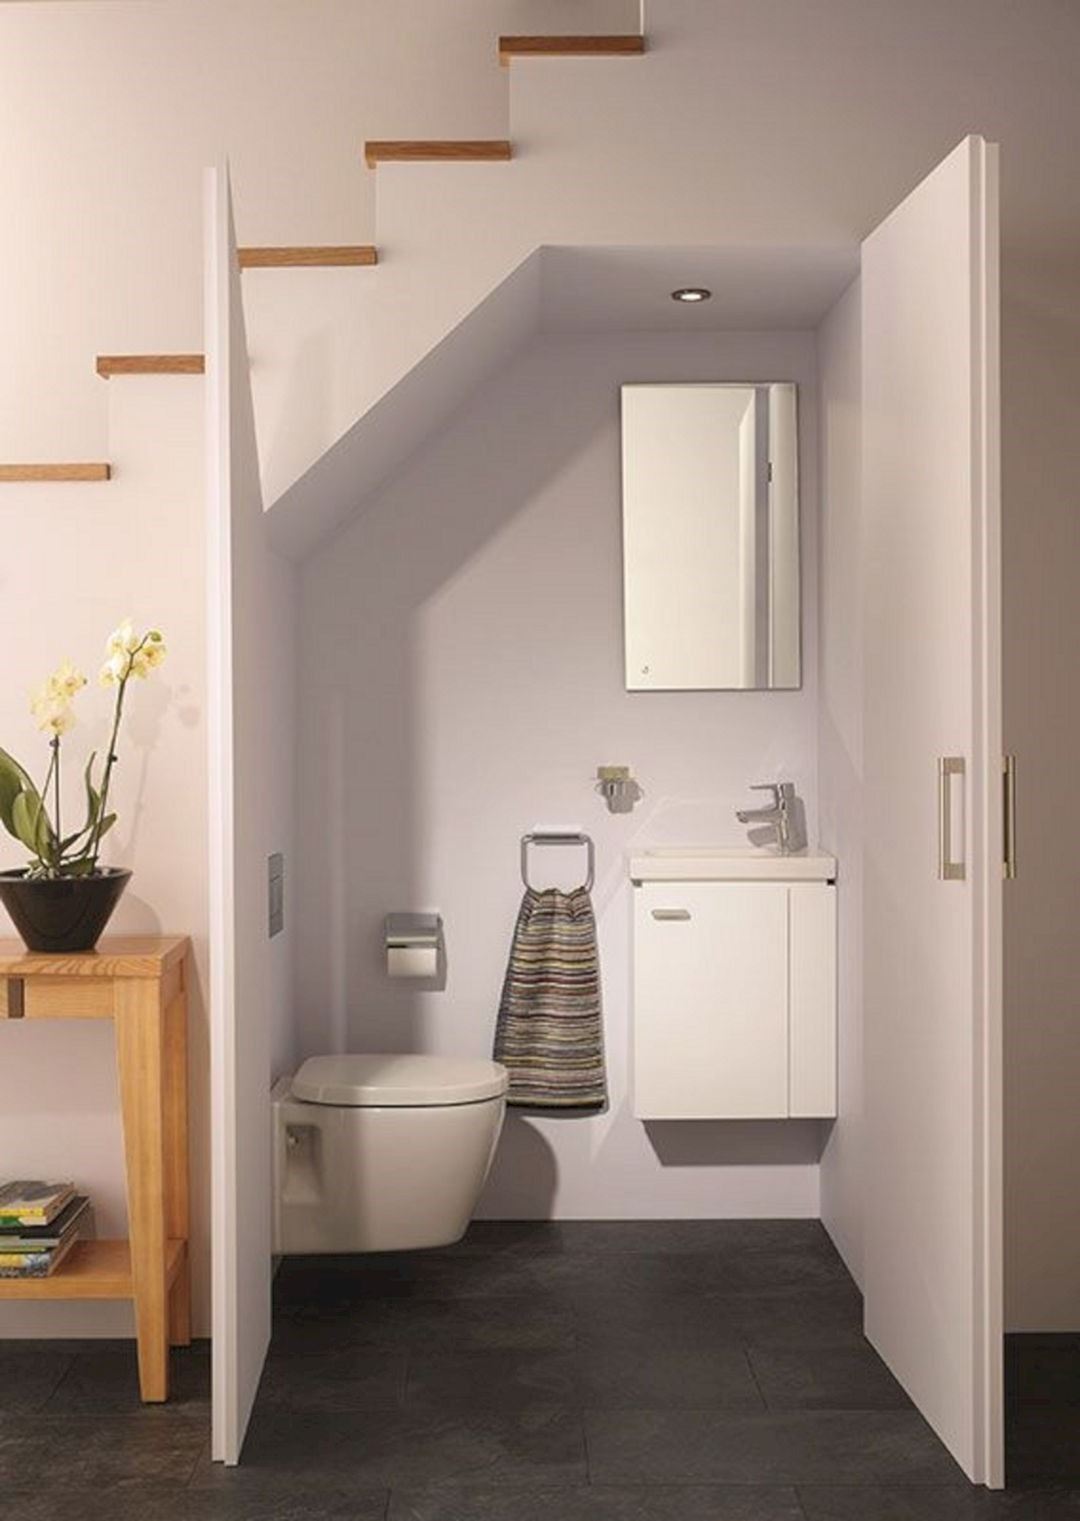 Cloakroom To Toilet Conversion Doors Windows Kitchens   Under Stair Toilet Design   Toilet Separate   Small   Powder Room   Down   Minimalist